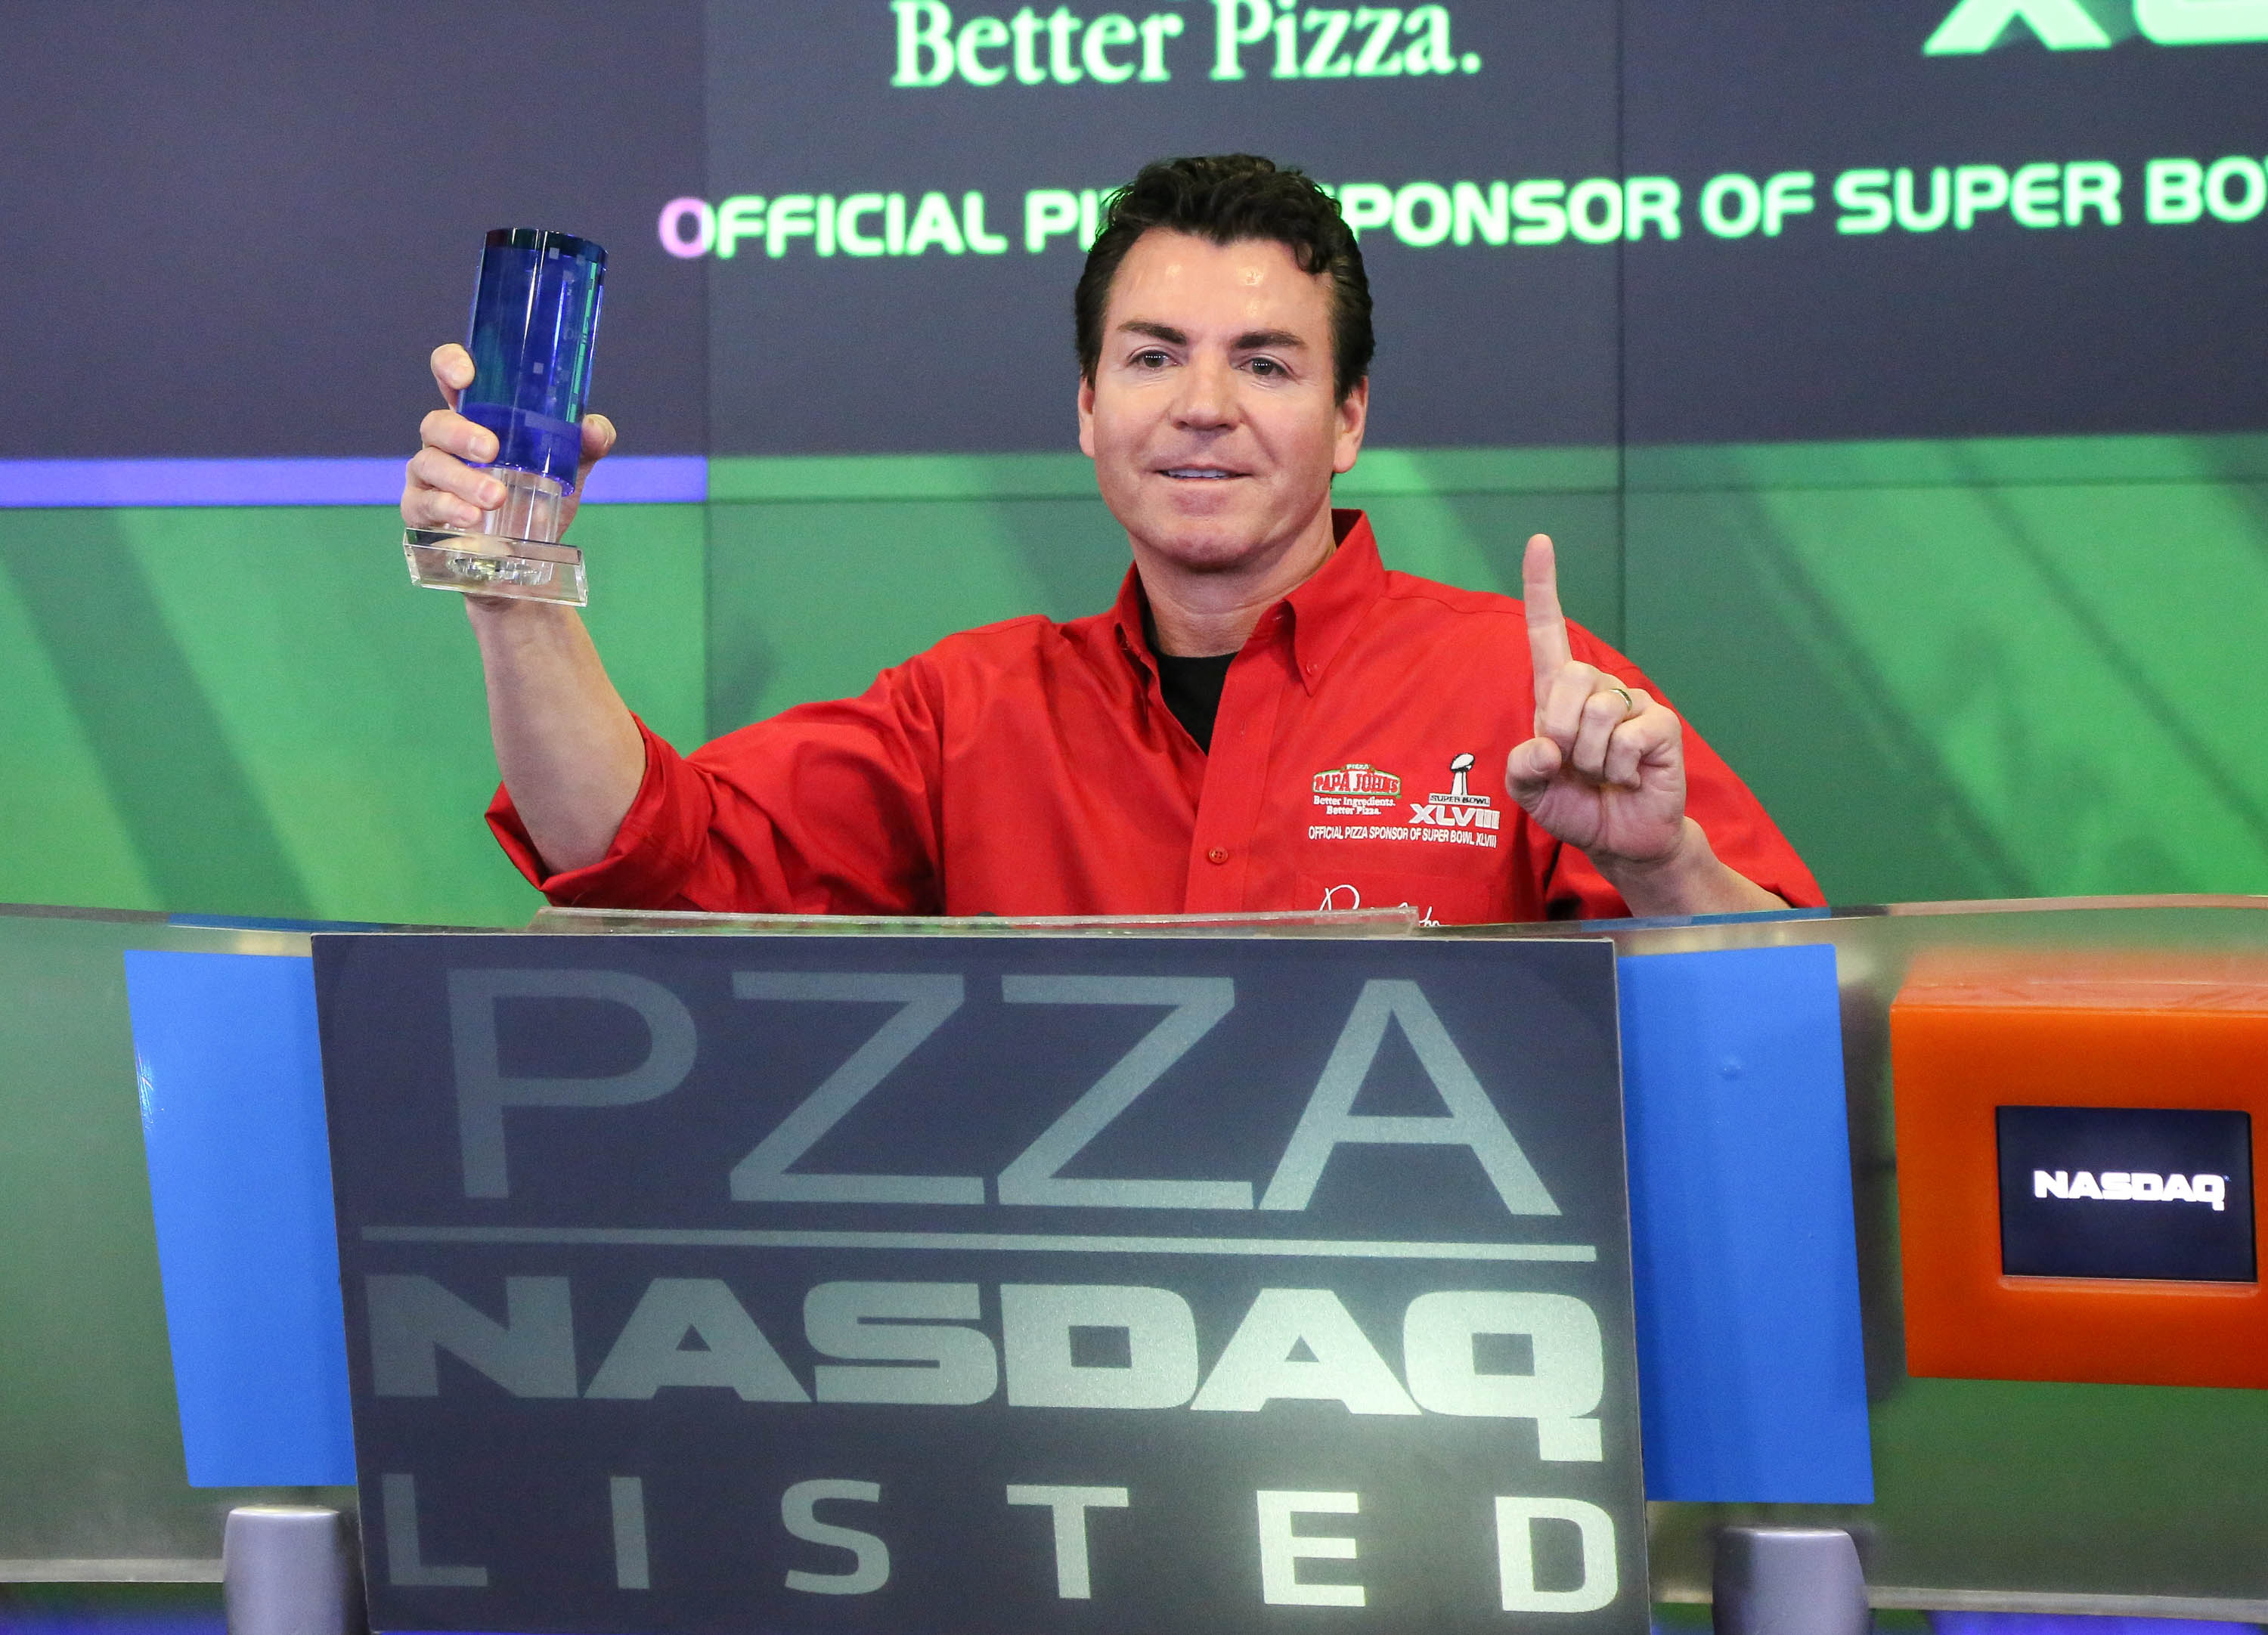 John Schnatter, formerly of Papa John's, wears a red zip-up and stands in front of blue and green graphics when ringing the opening bell at NASDAQ.